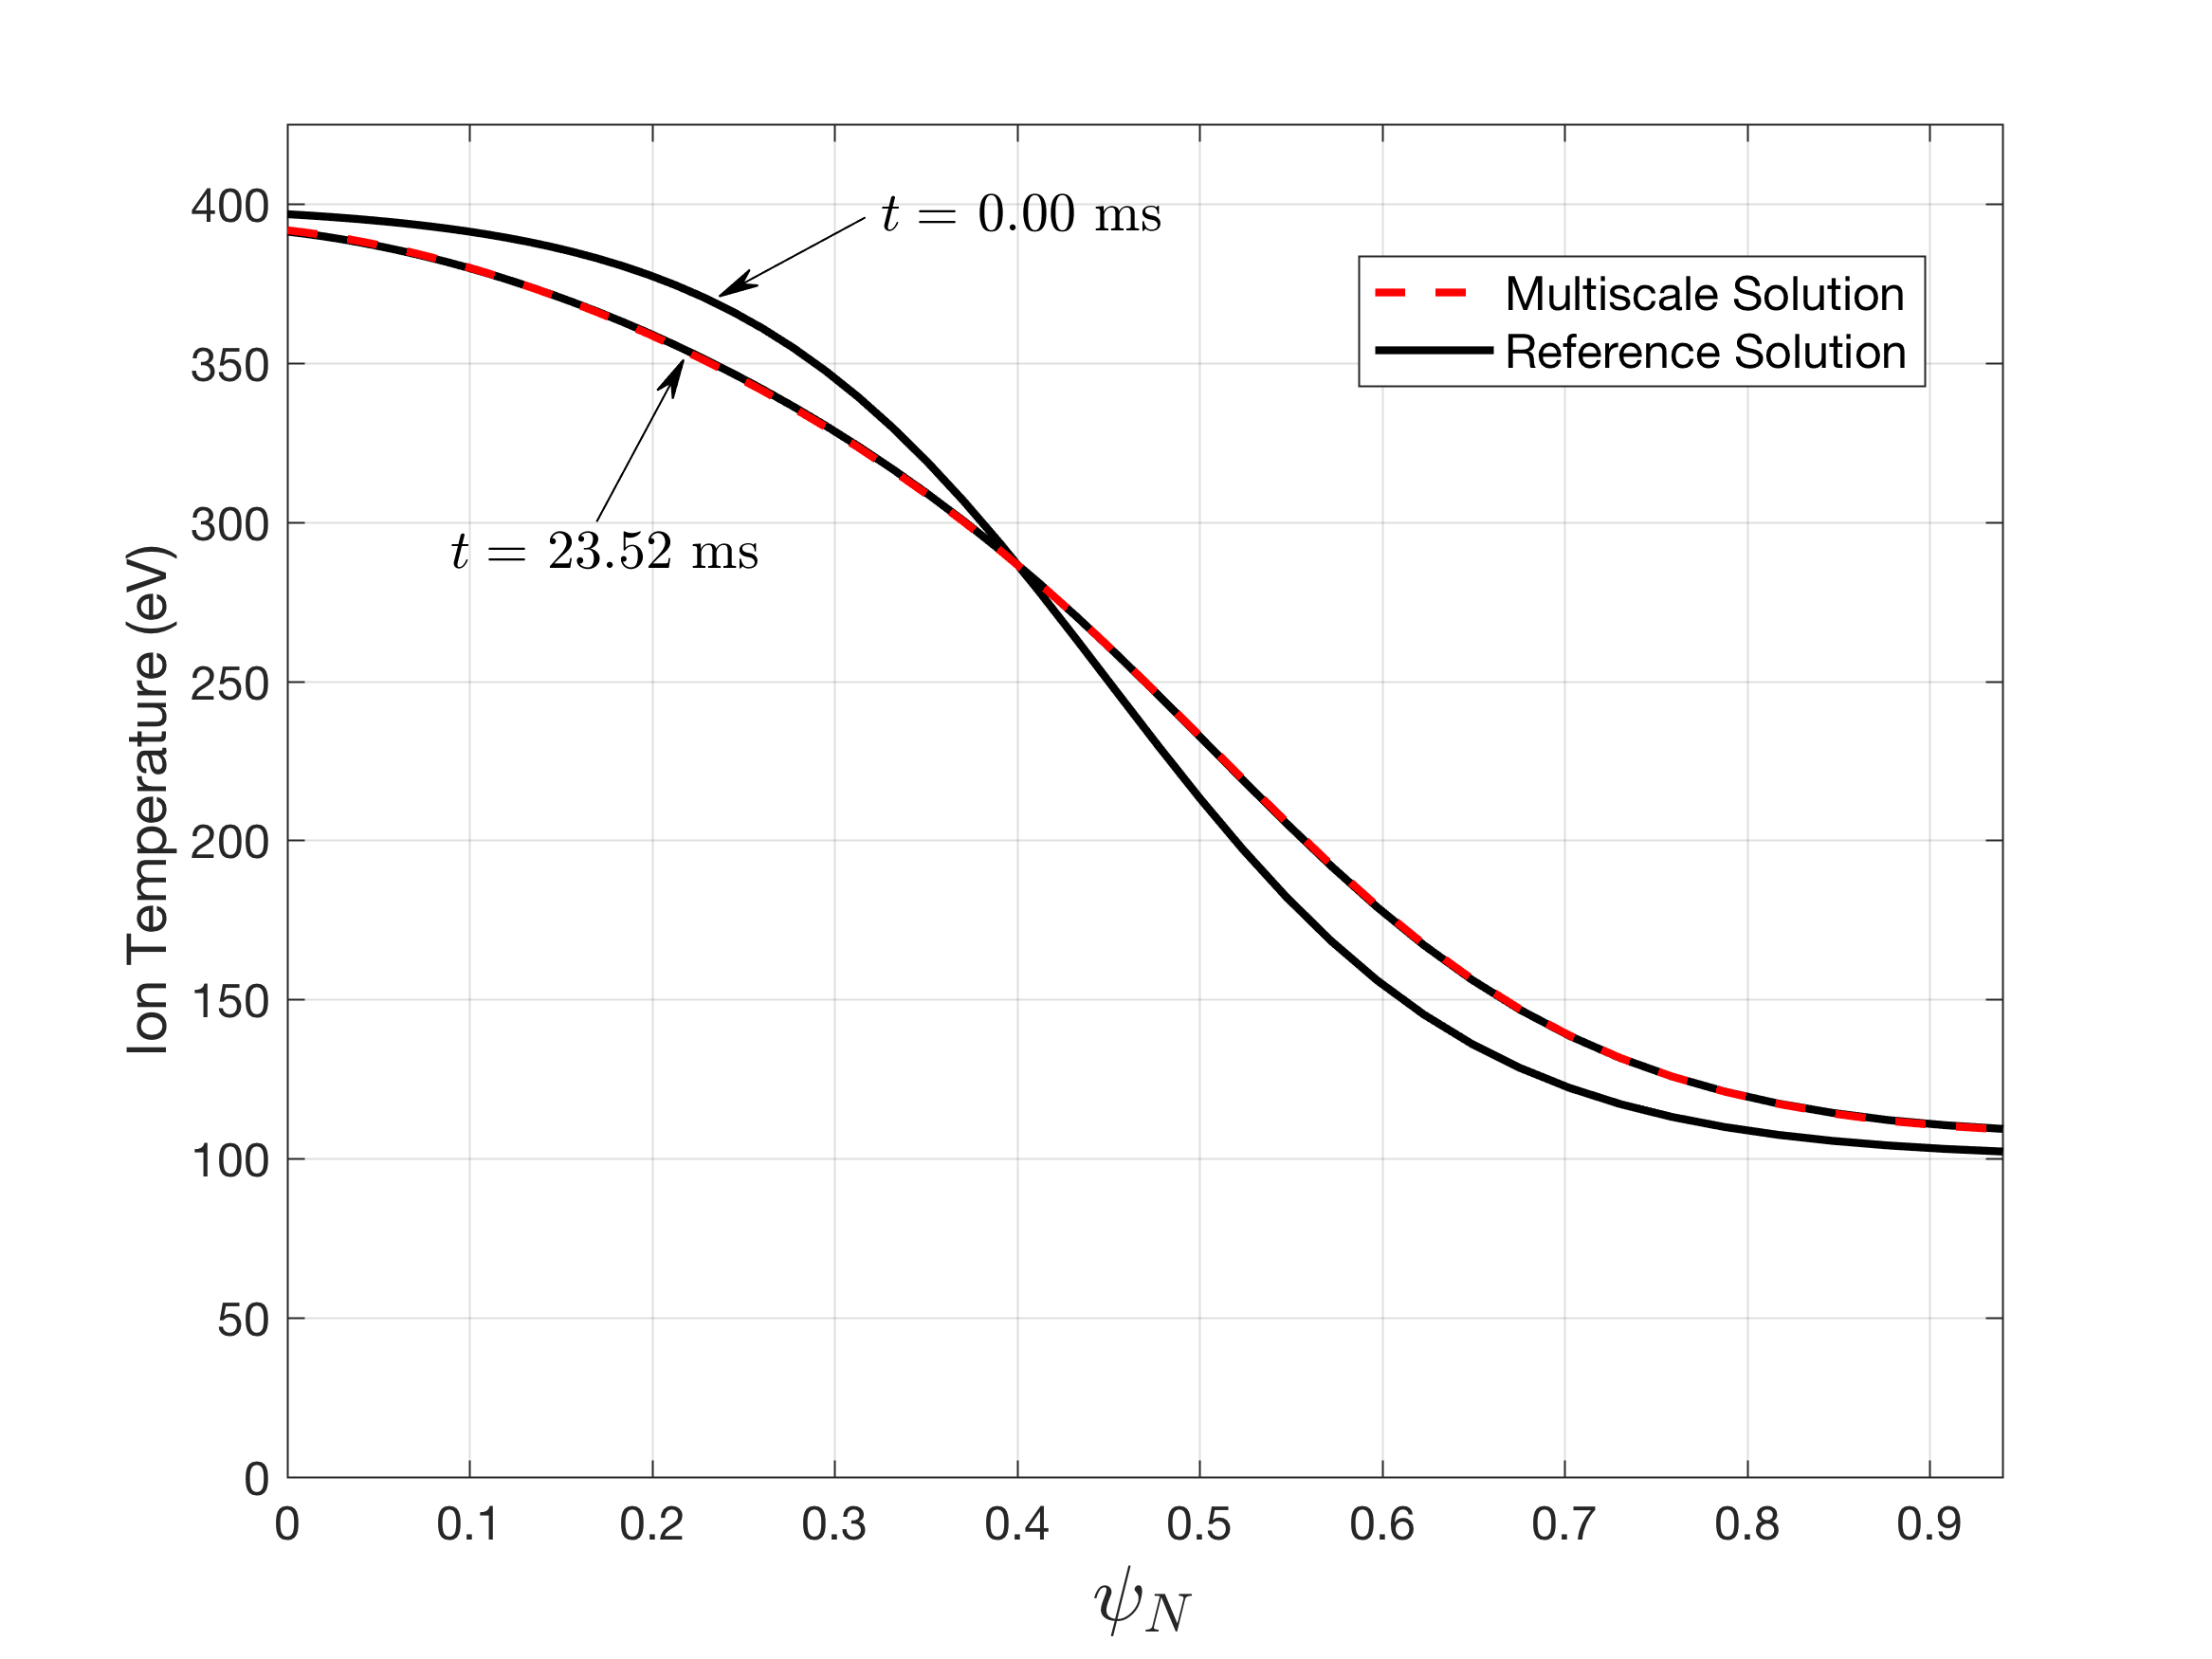 Initial and final (t = 23.5 ms) ion temperature profiles, comparing results from our multiscale method to a reference solution obtained by direct long timescale gyrokinetic simulation.